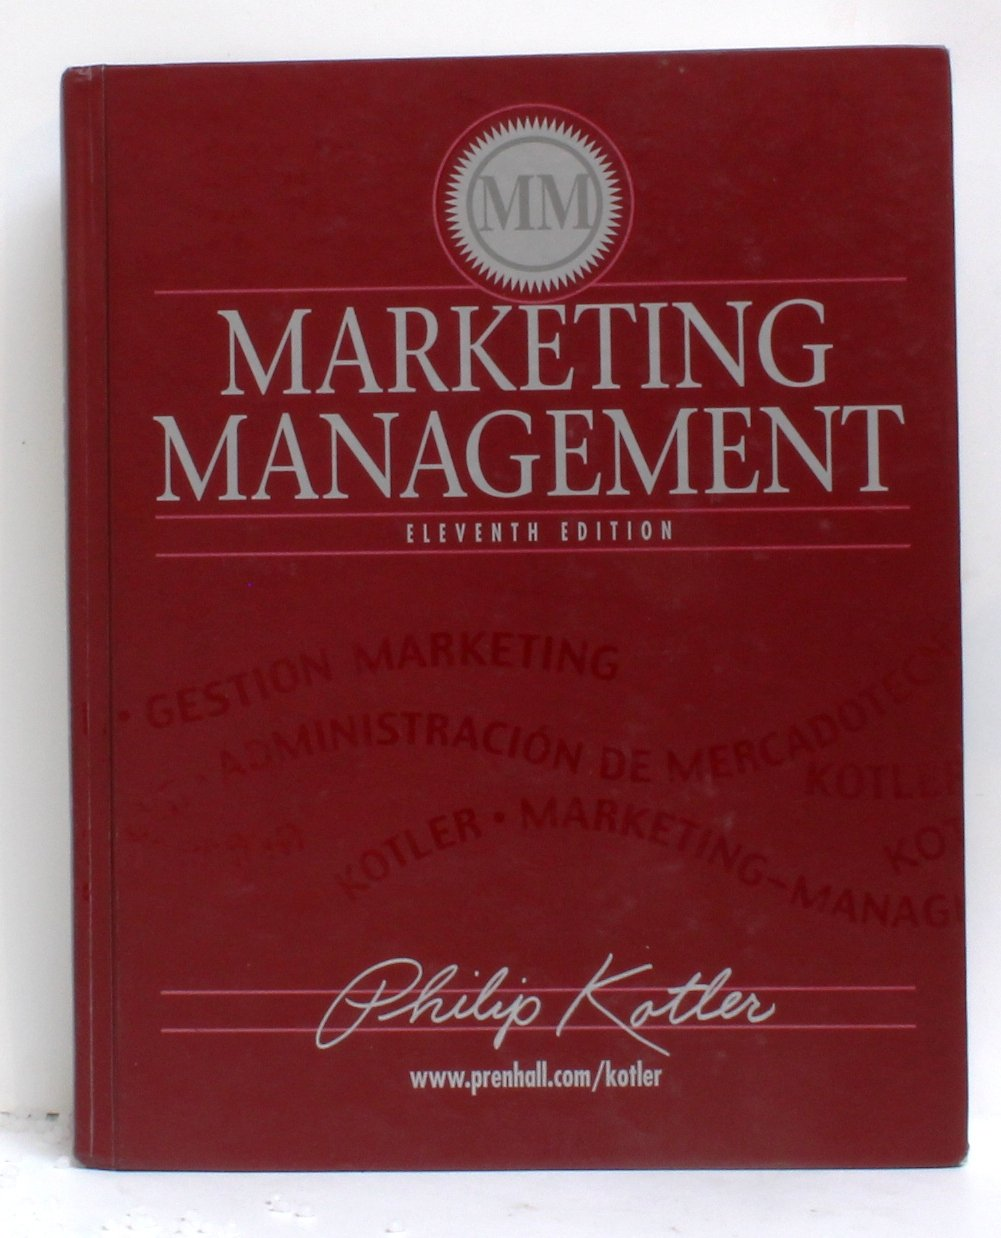 Marketing management 11th edition by philip kotler, books.